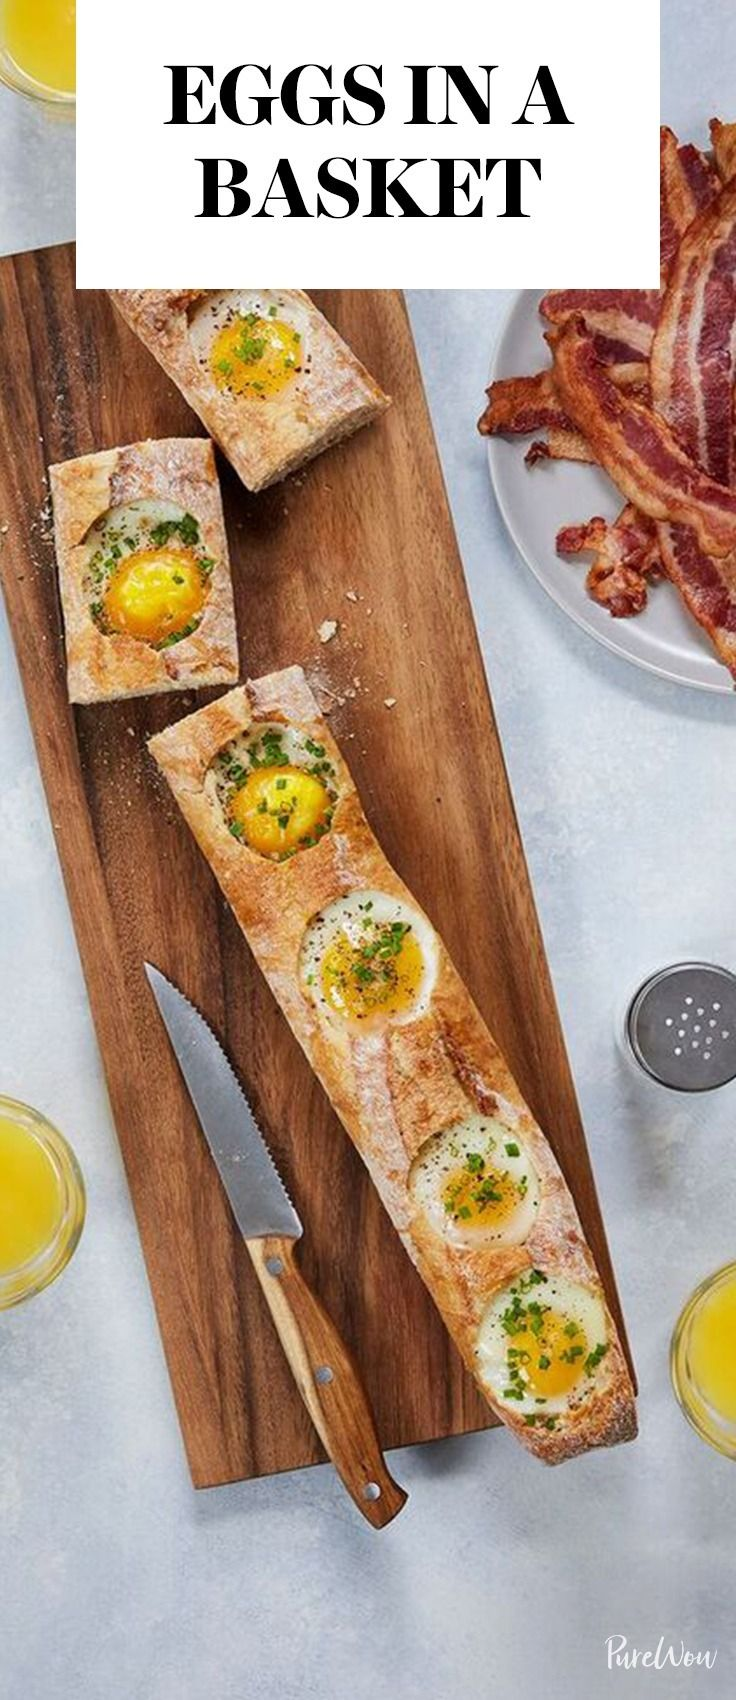 Skip the bread slices and use a whole loaf as the vessel for your eggs. Get this delicious eggs in a basket recipe here.